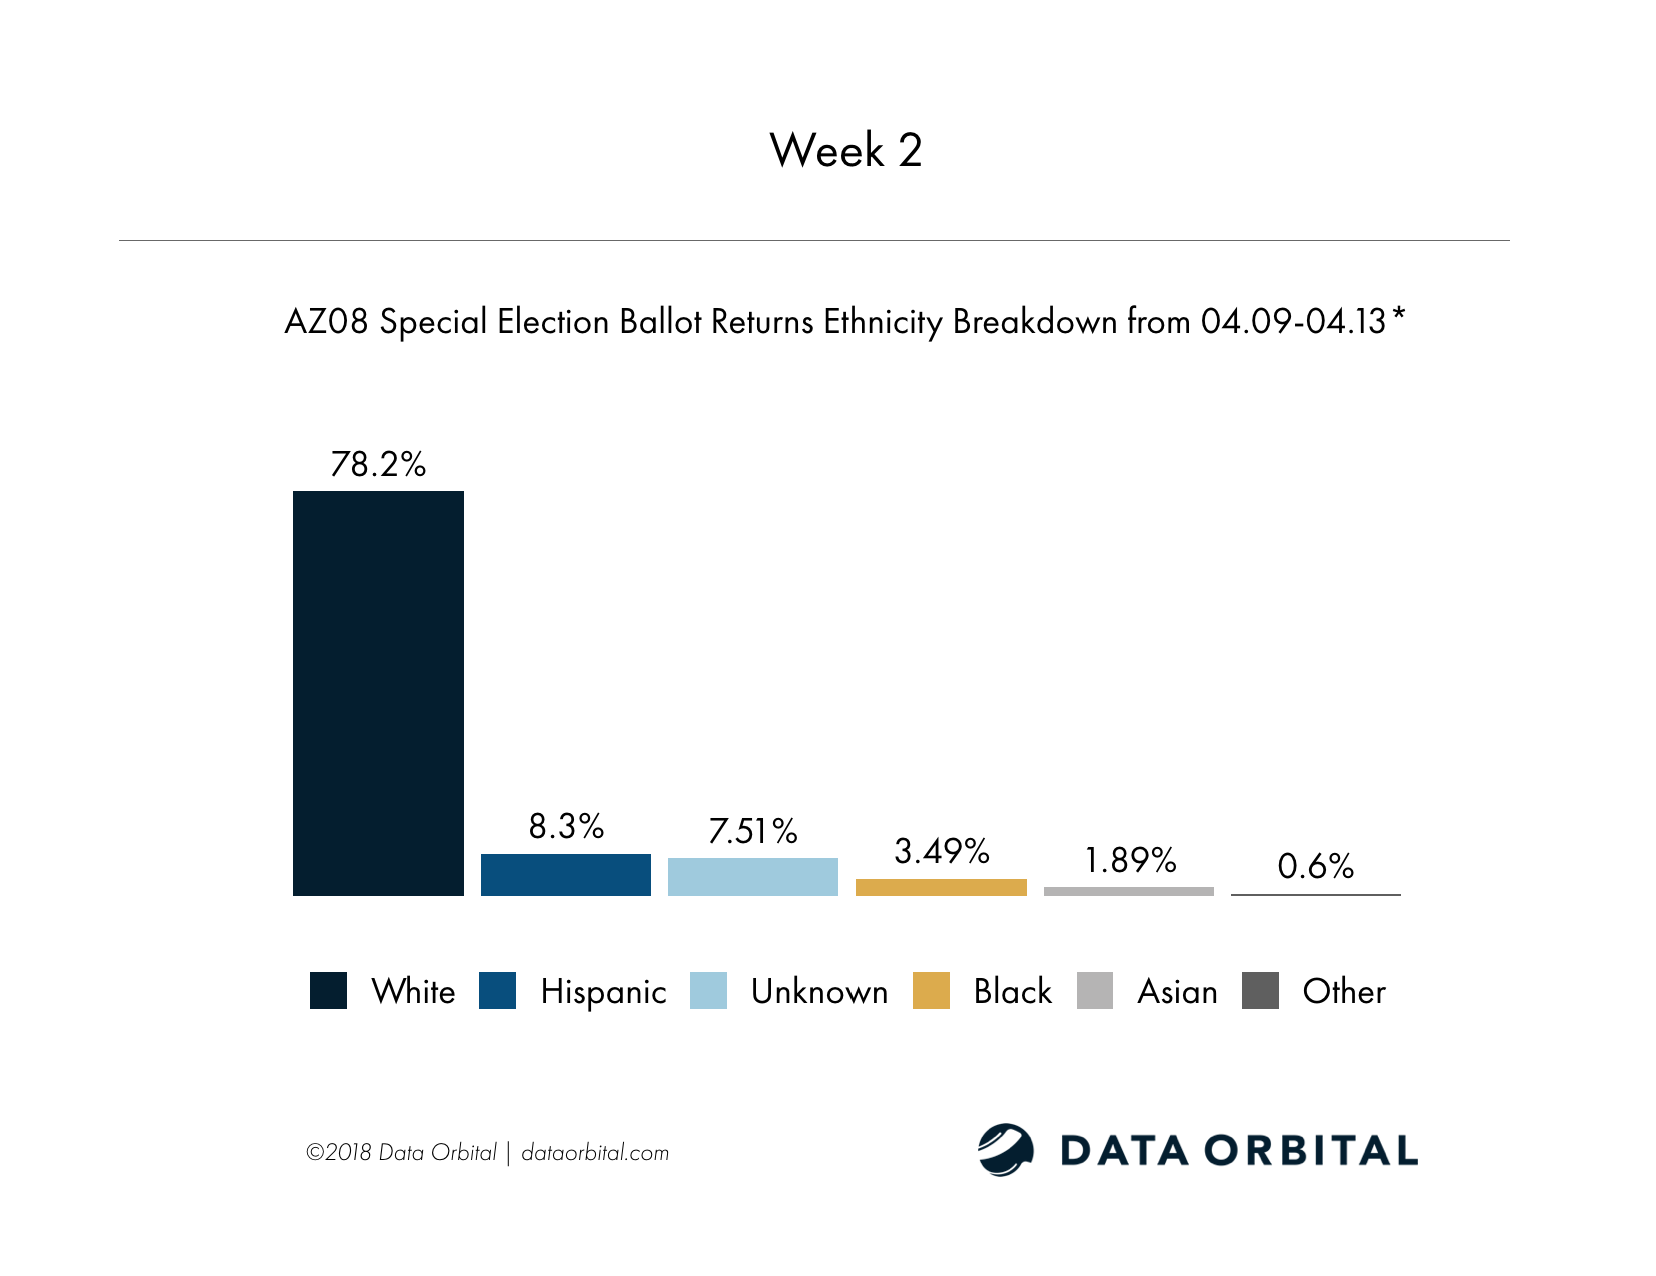 AZ08 Special Election Week 2 Wrap Up Ethnicity by Party Breakdown Week 2